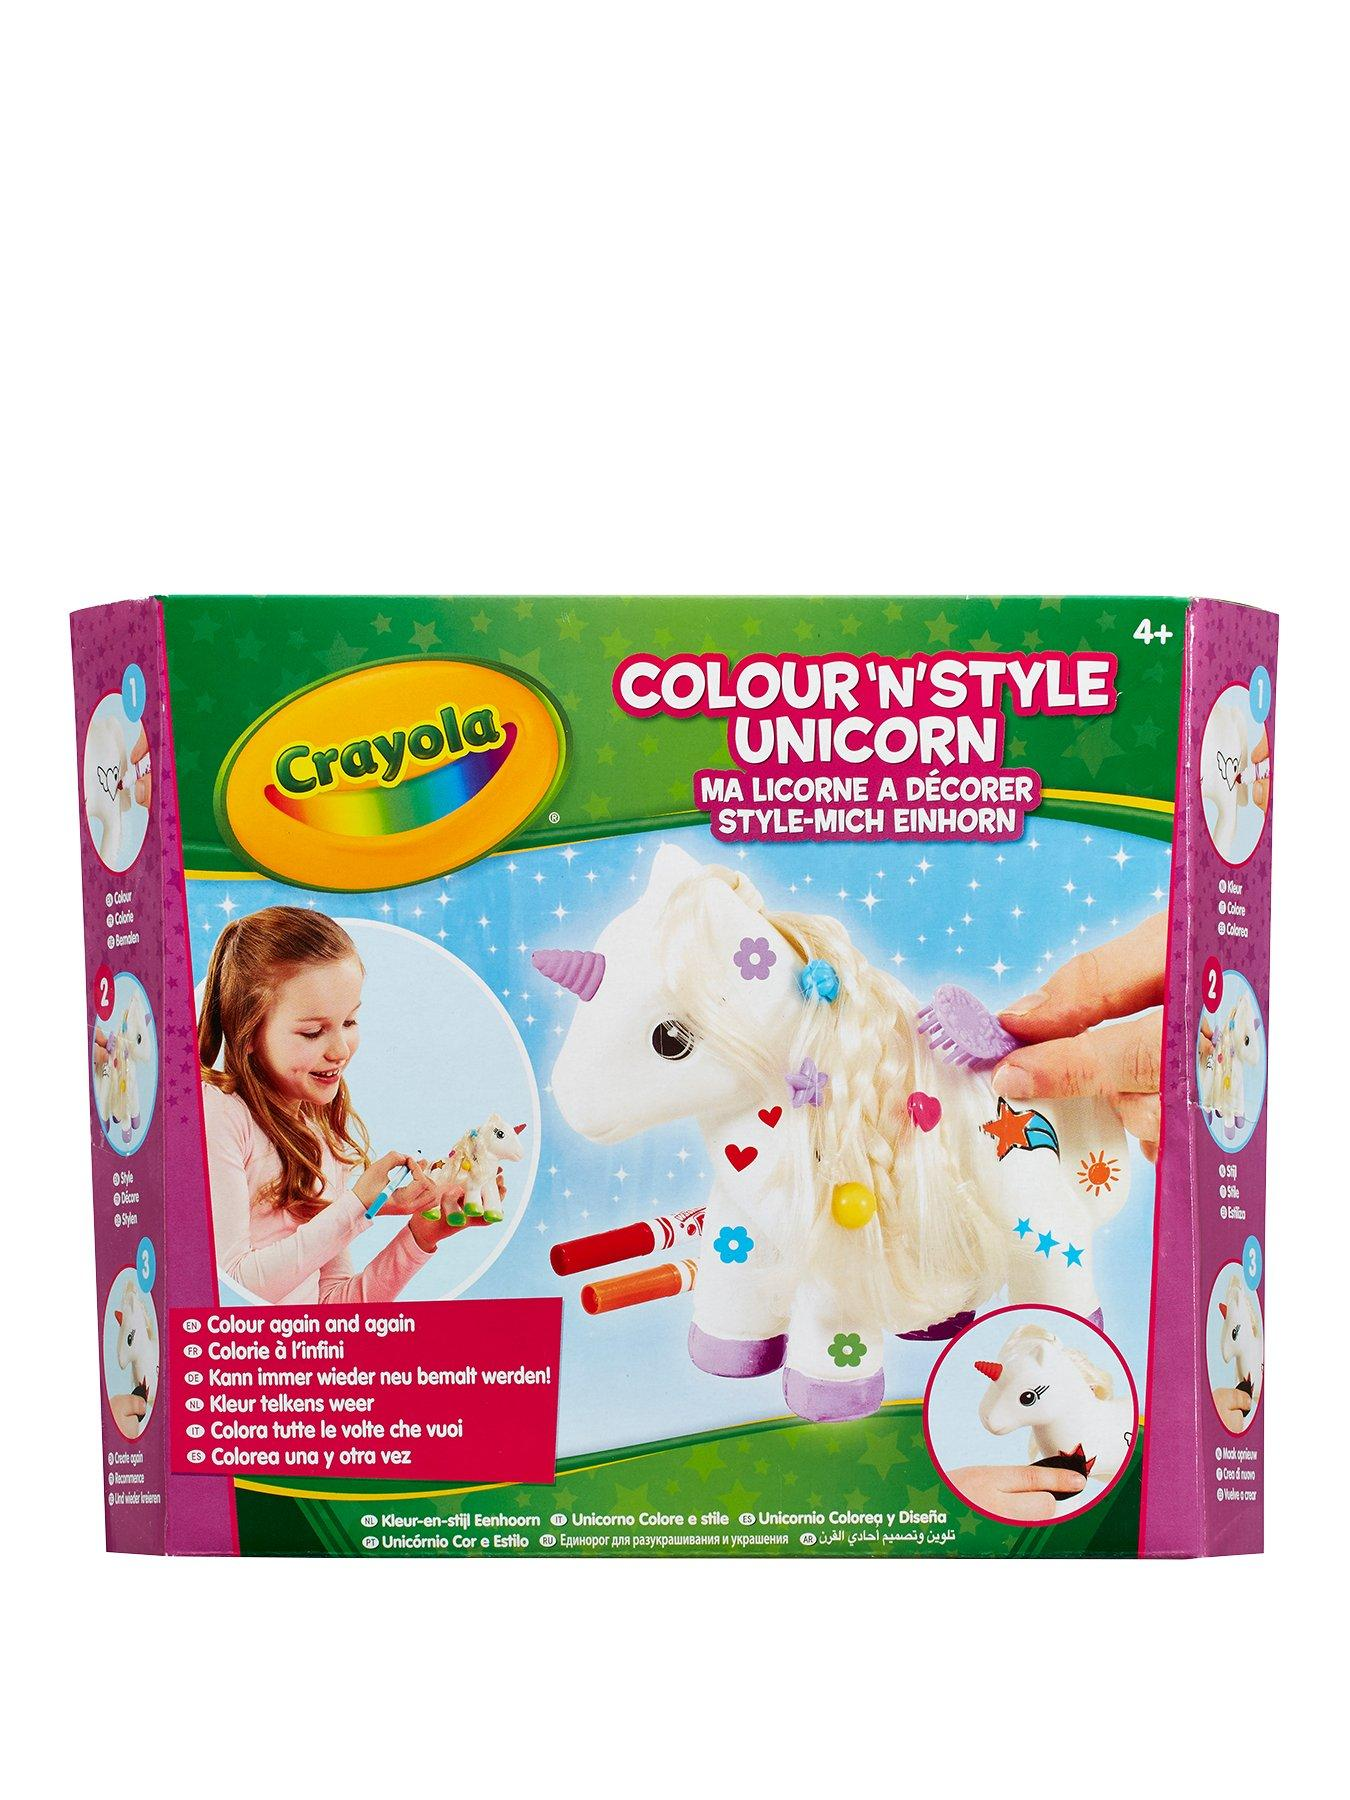 Compare prices for Crayola Colour N Style Unicorn